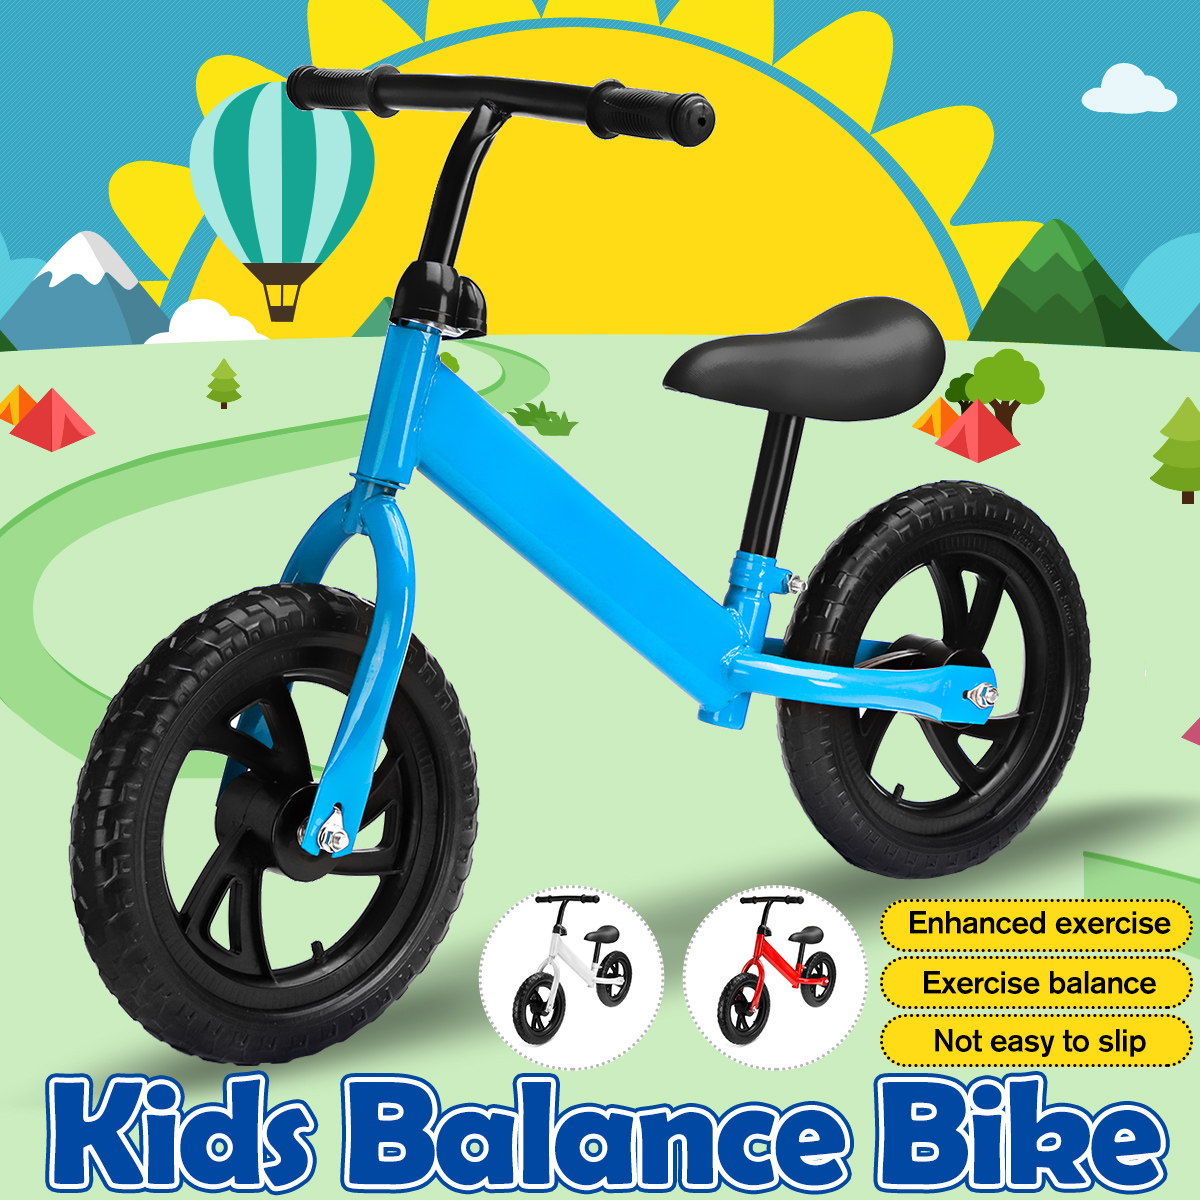 Carbon Steel Baby Training Bike Baby Balance Bike No Pedals Tricycle Riding Toys Baby Learning Walker Kids Bicycle No Handbrake